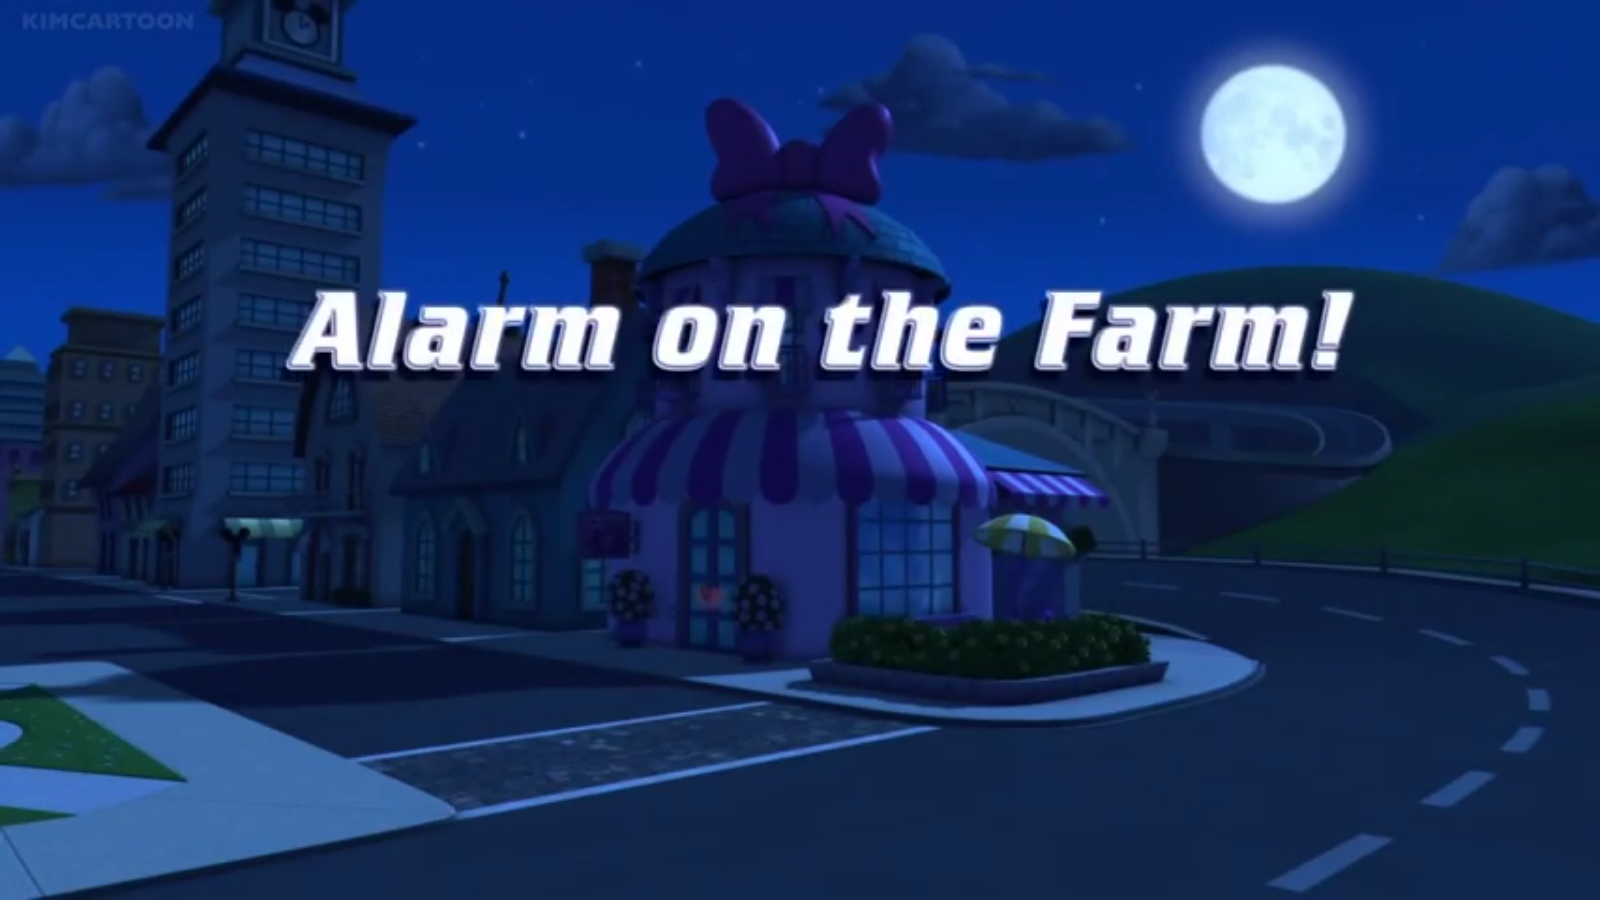 Alarm on the Farm!